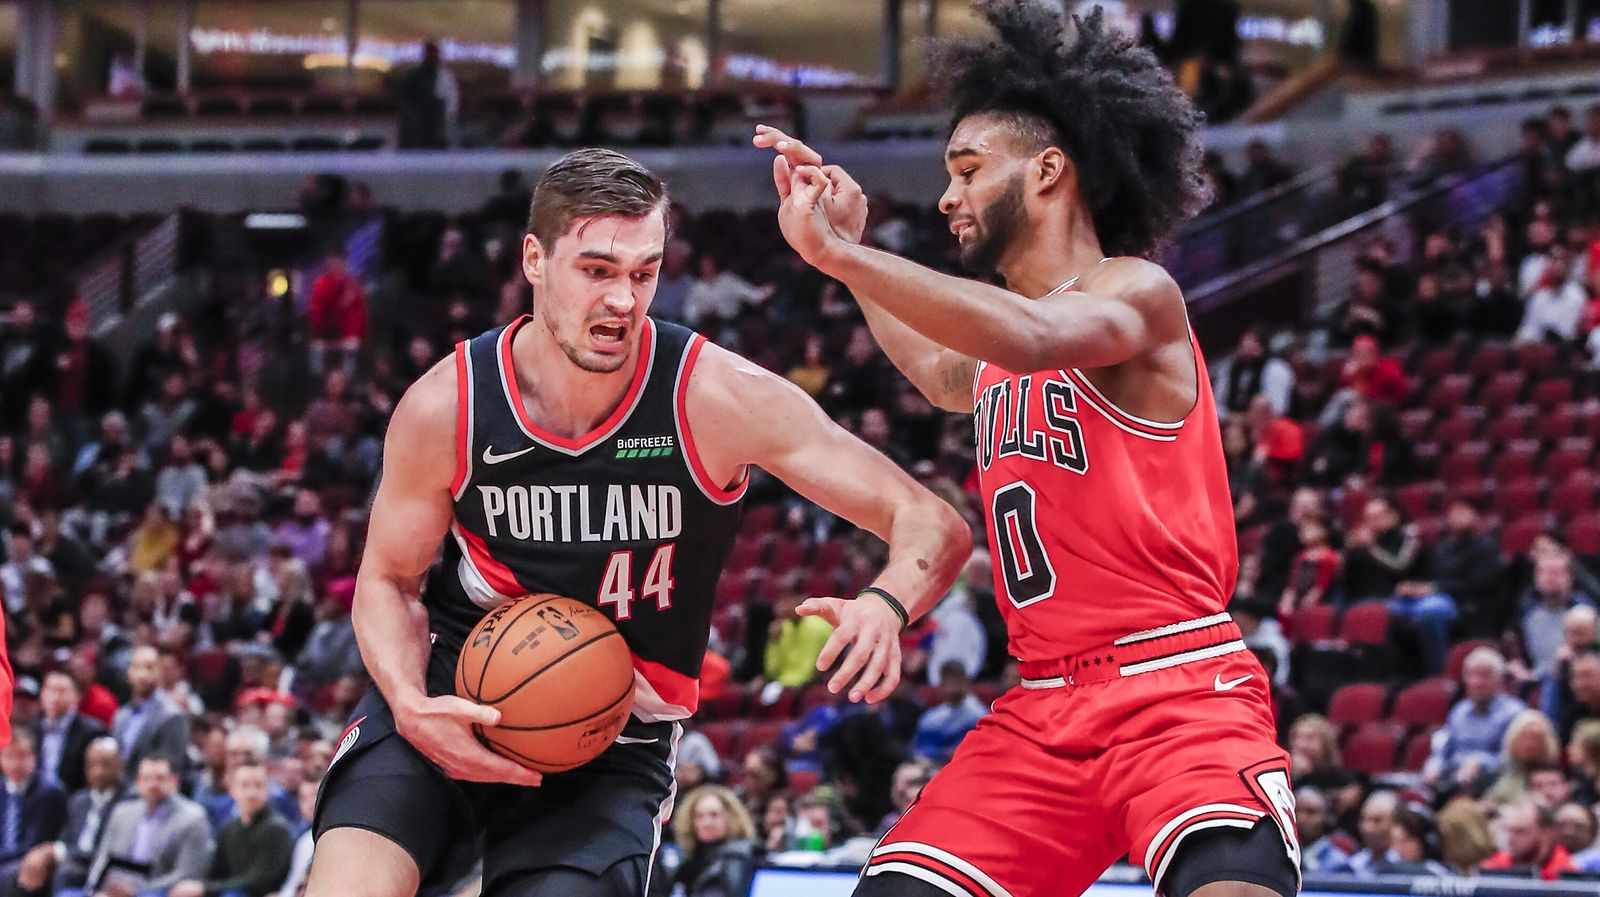 Portland Trail Blazers at Chicago Bulls